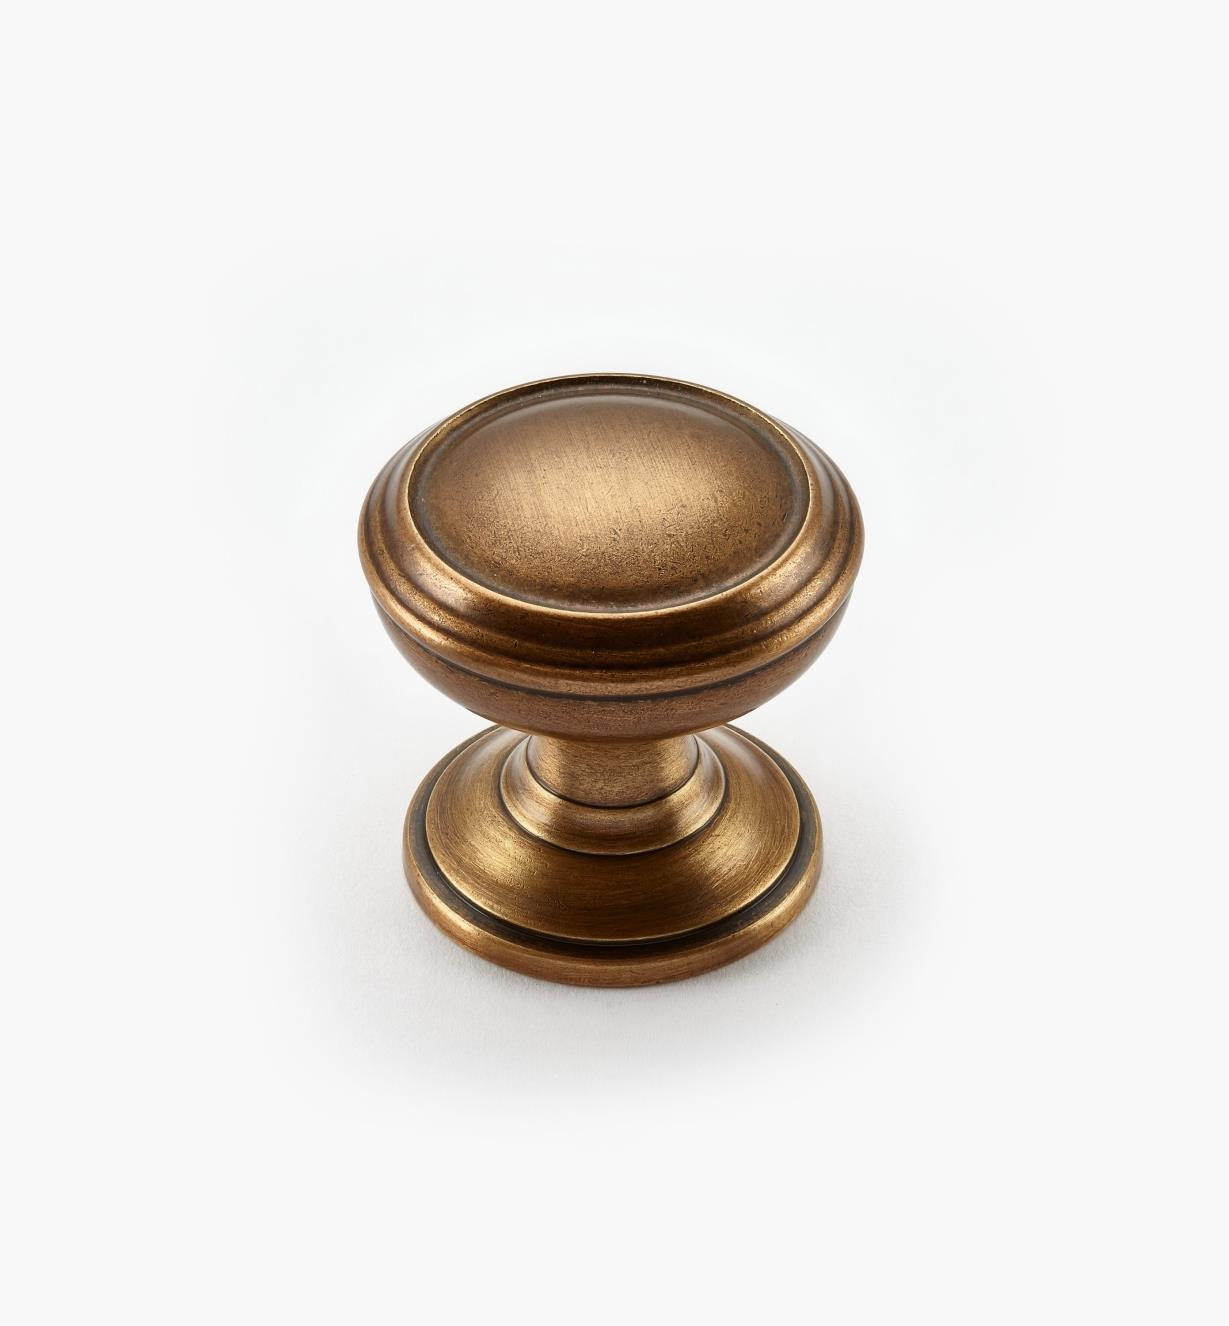 "02A1692 - Revitalize Gilded Bronze 1 1/4"" Plain Round Knob, each"